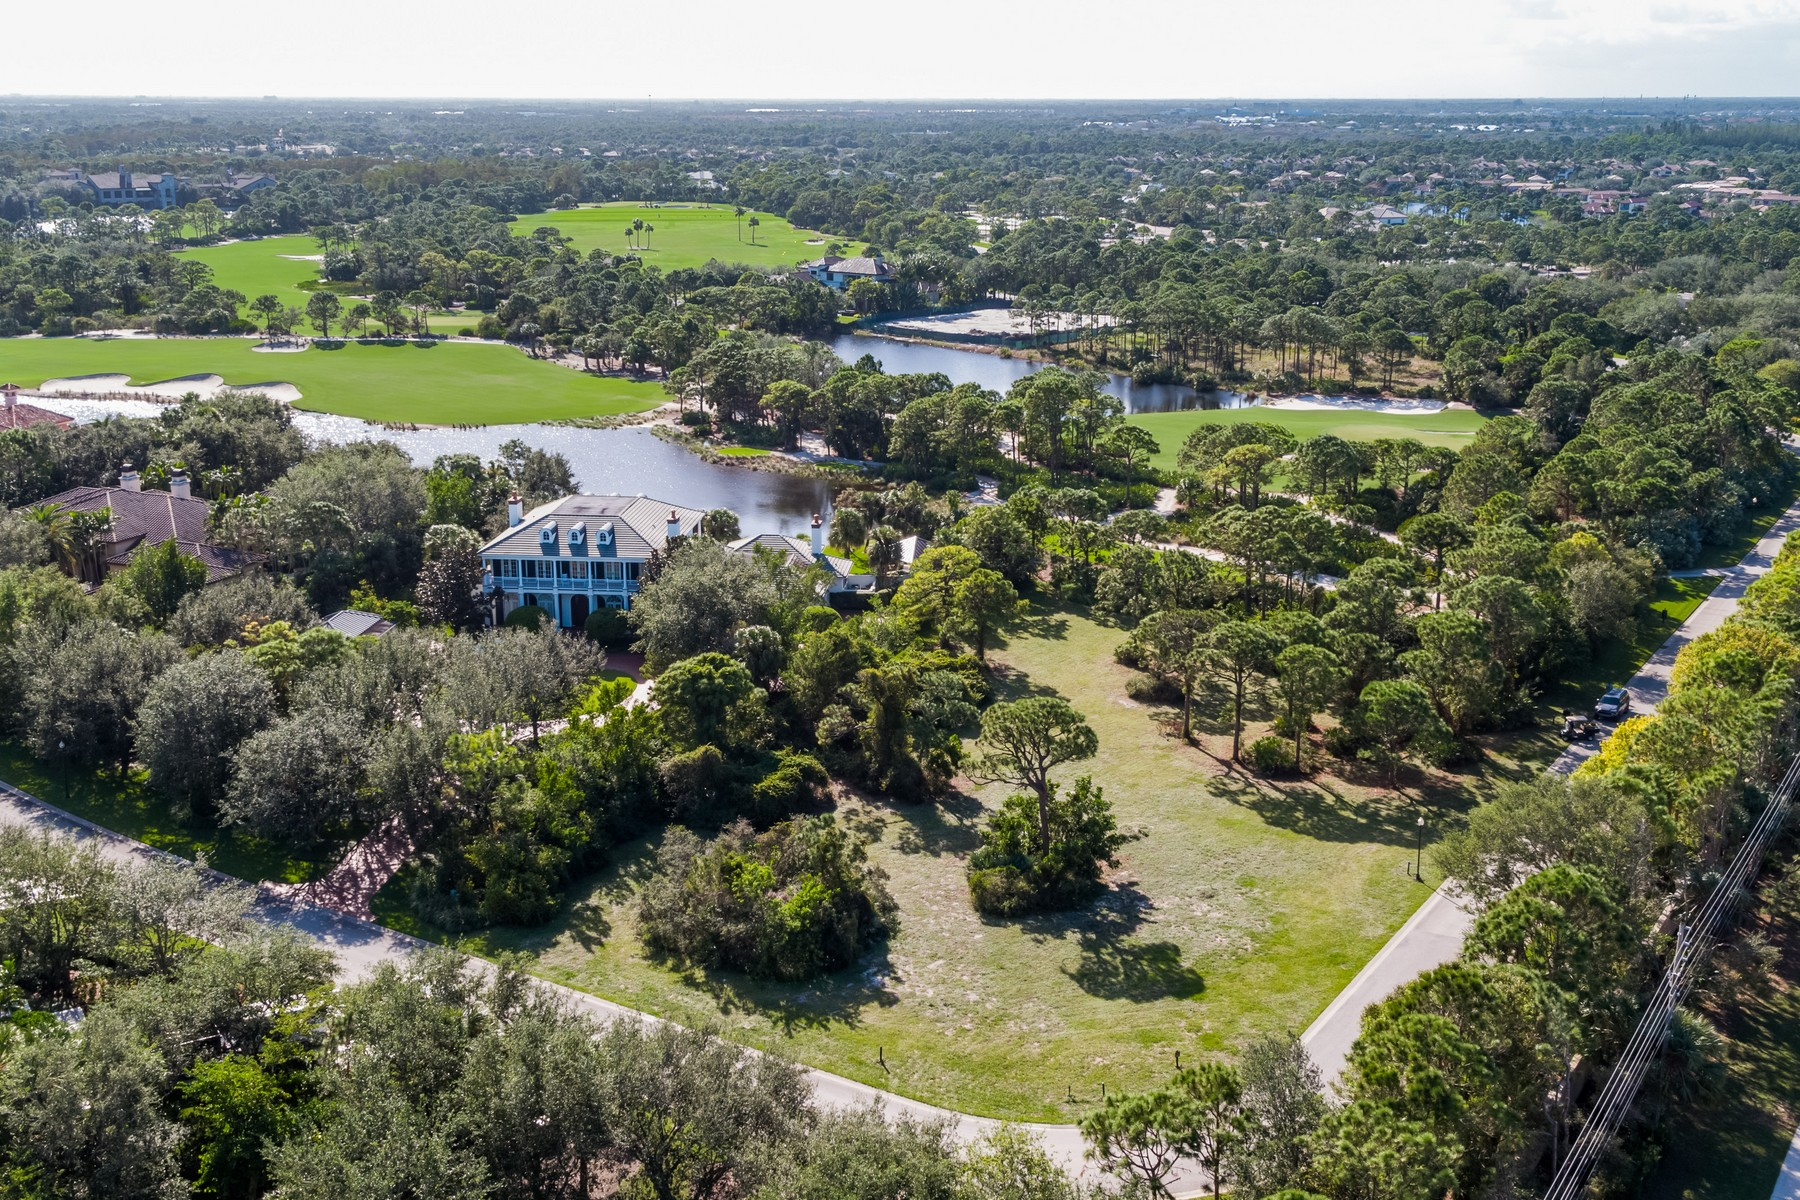 Land for Sale at 210 Bear's Club Drive, Lot 5 at The Bear's Club 210 Bear's Club Drive, Lot 5 Jupiter, Florida 33477 United States